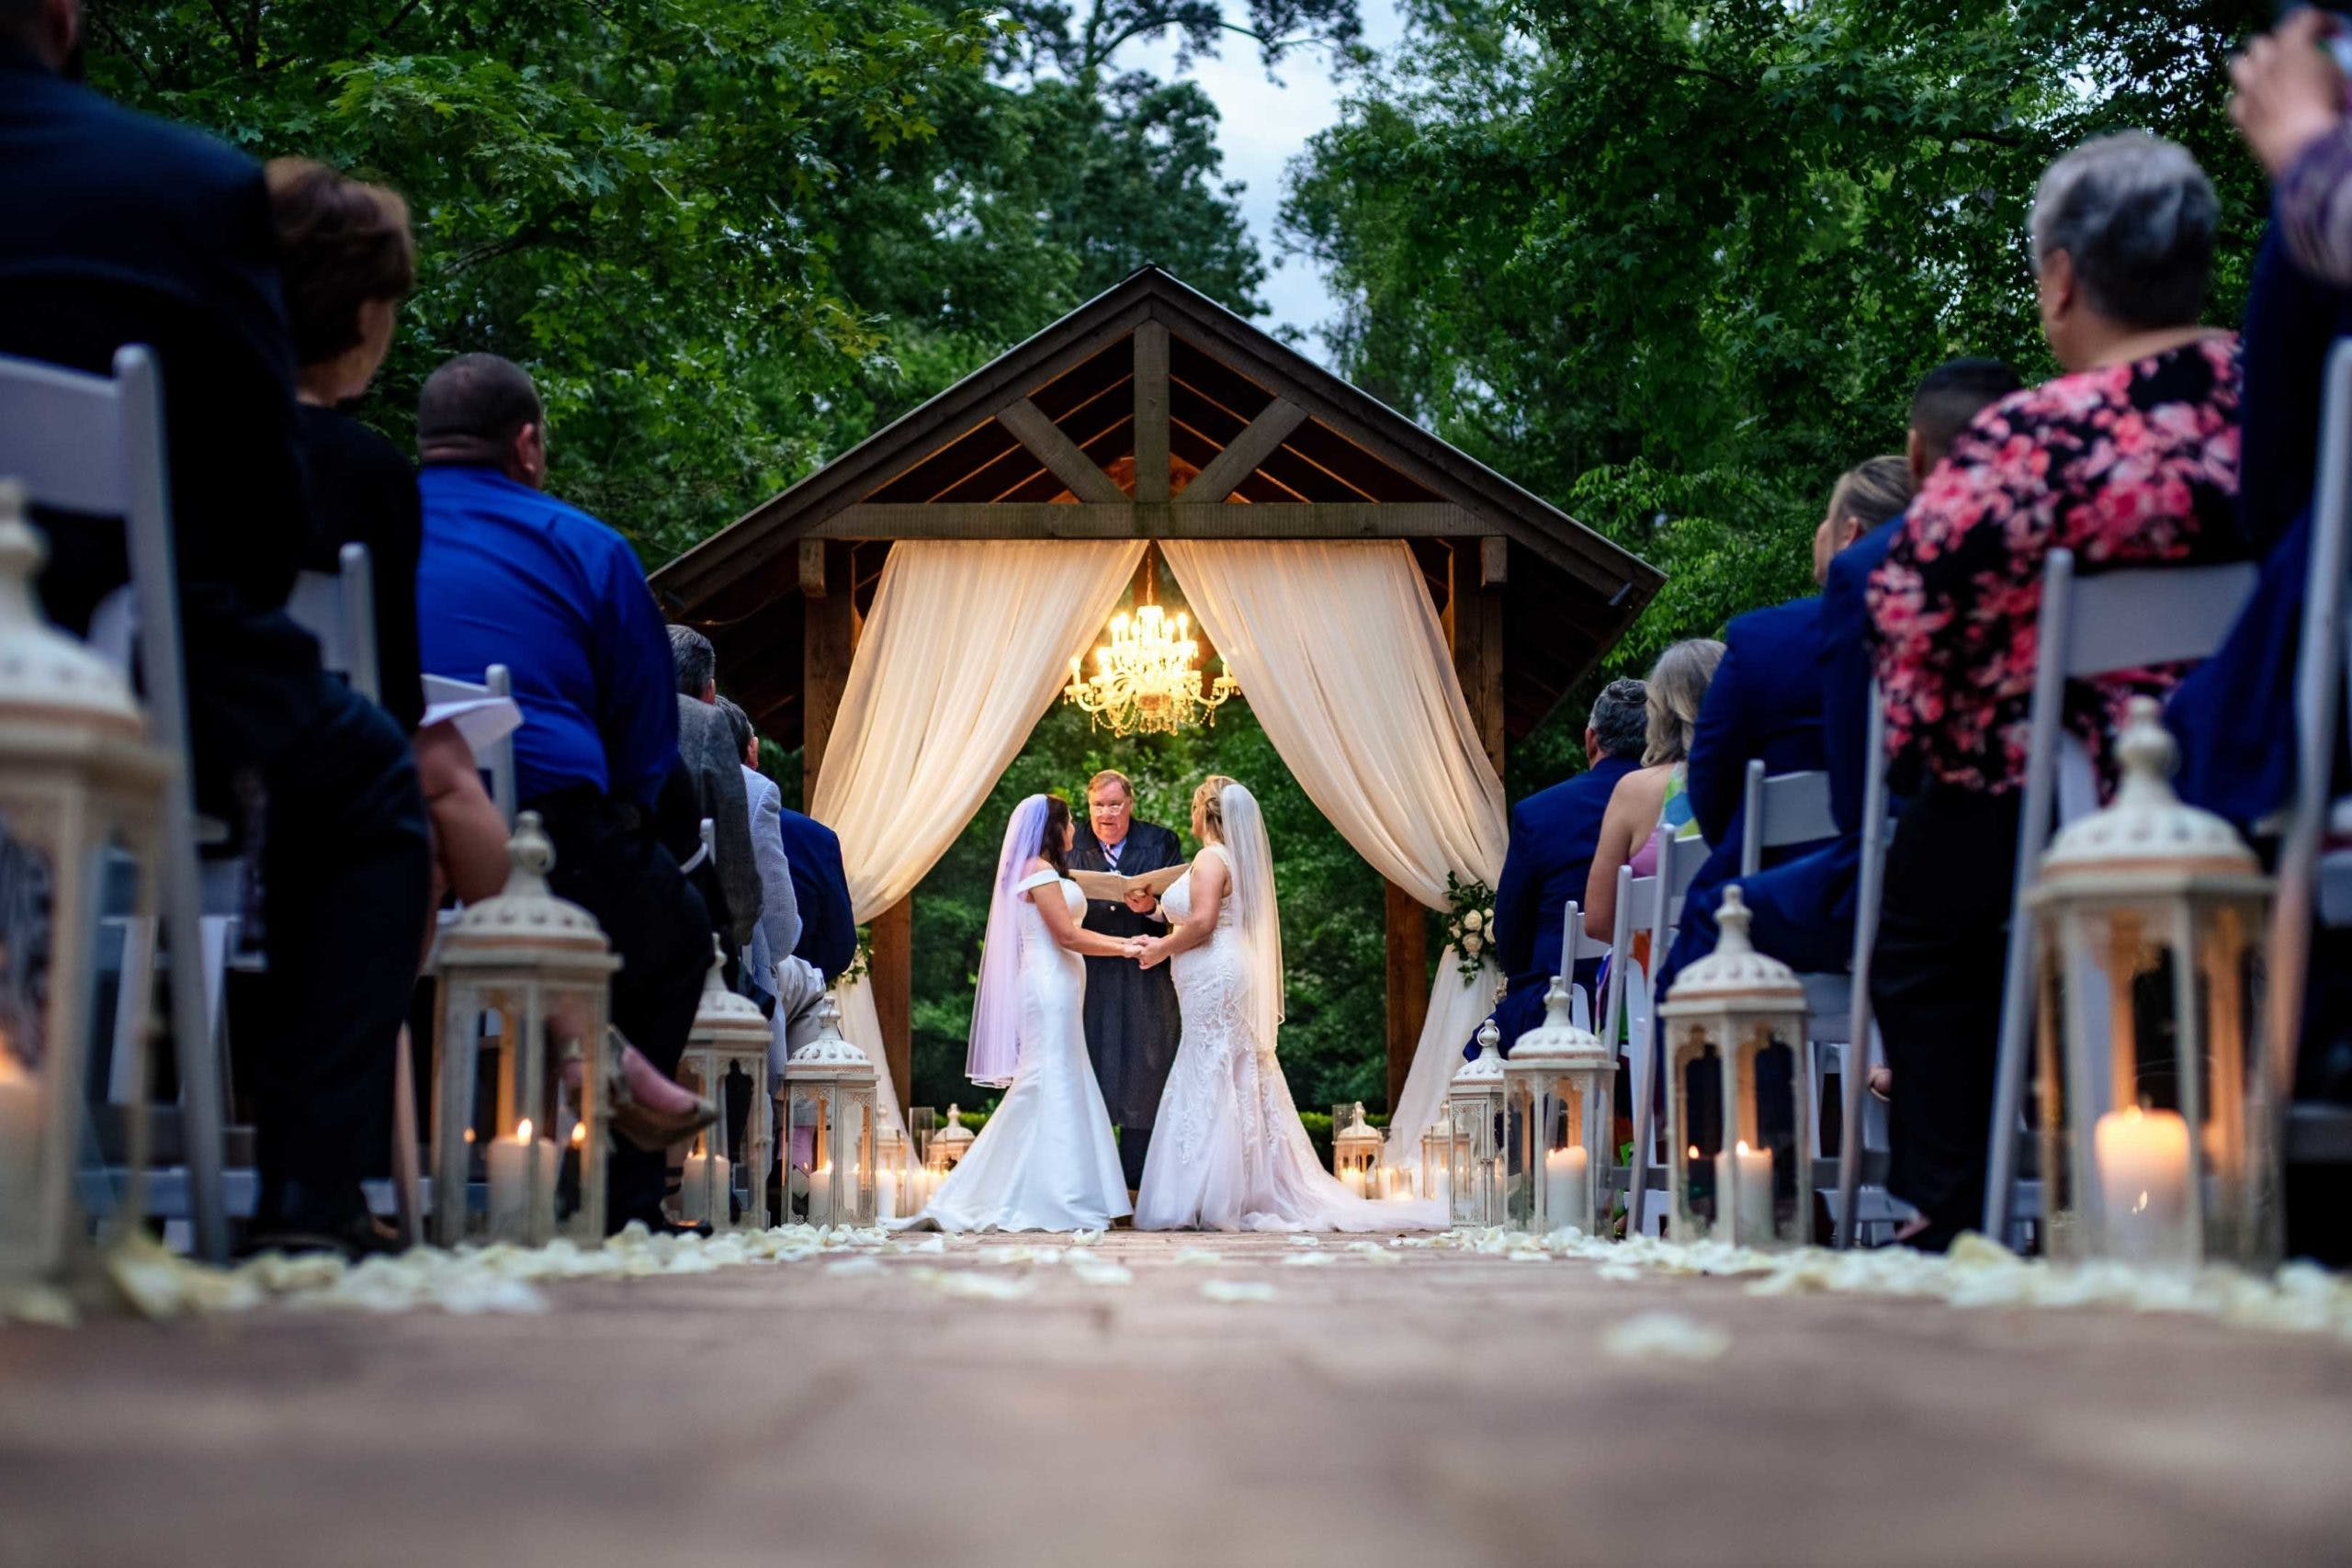 Two brides at end of aisle l PartySlate